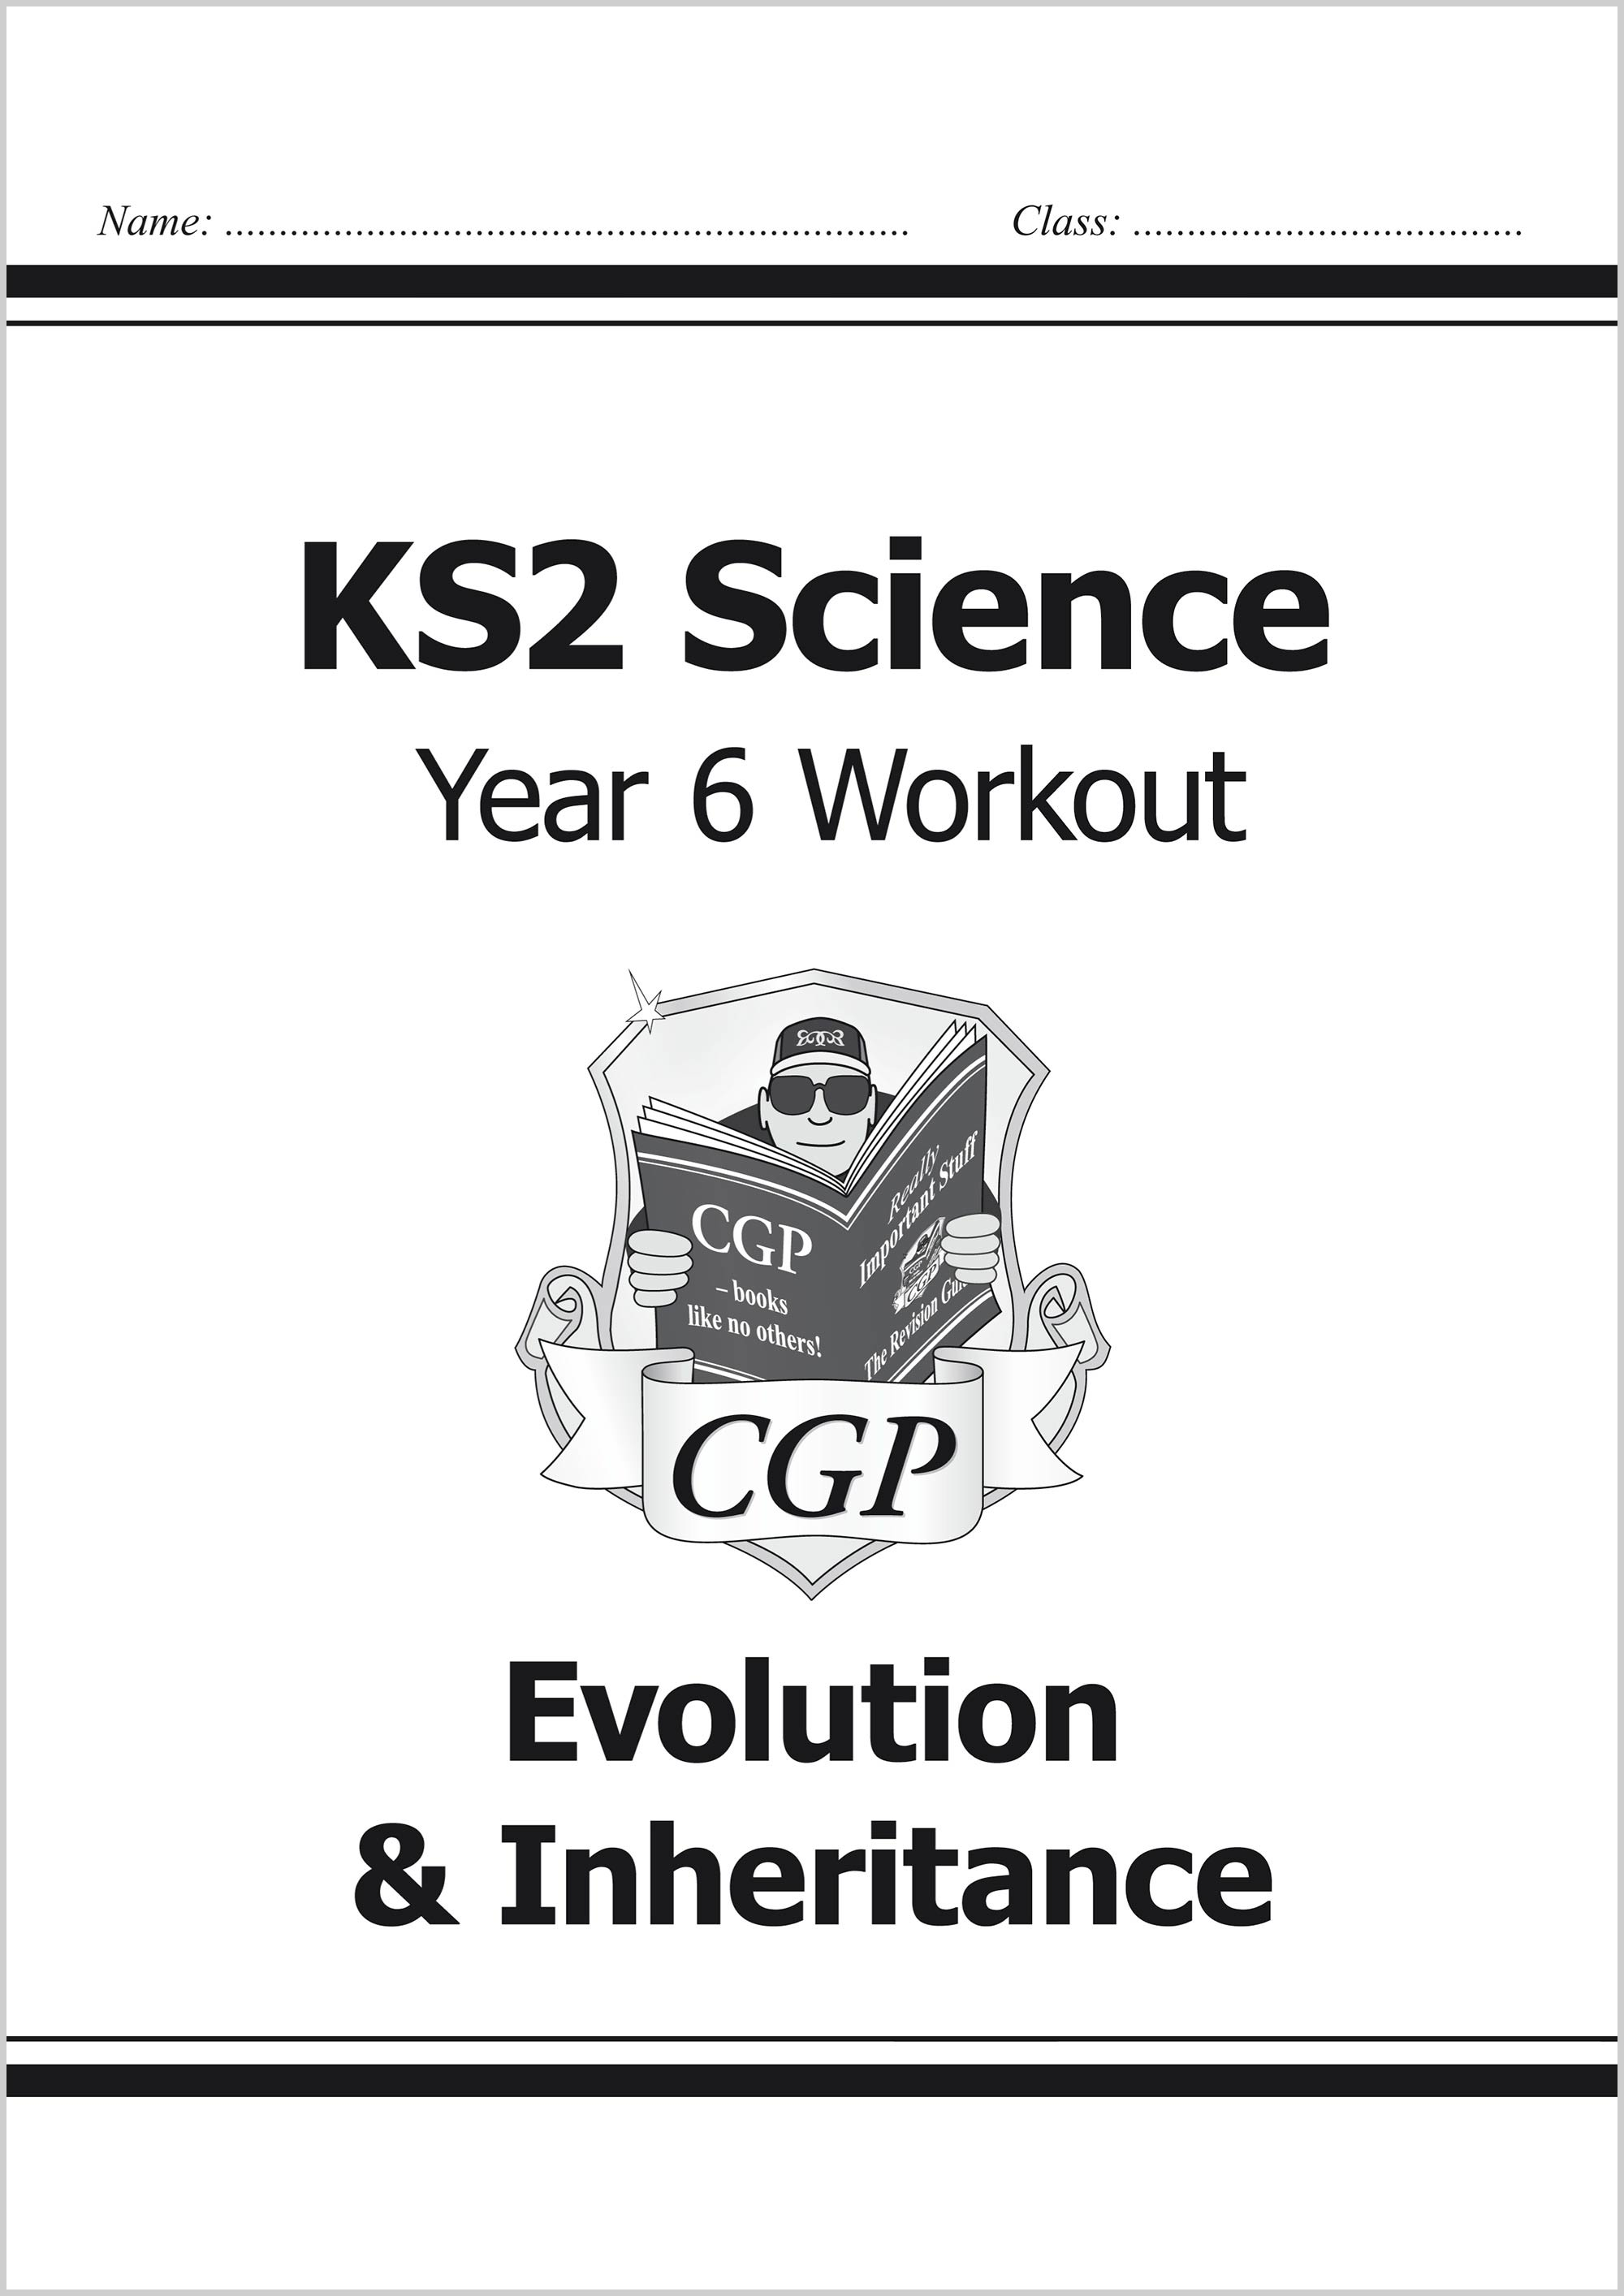 S6B22 - KS2 Science Year Six Workout: Evolution & Inheritance